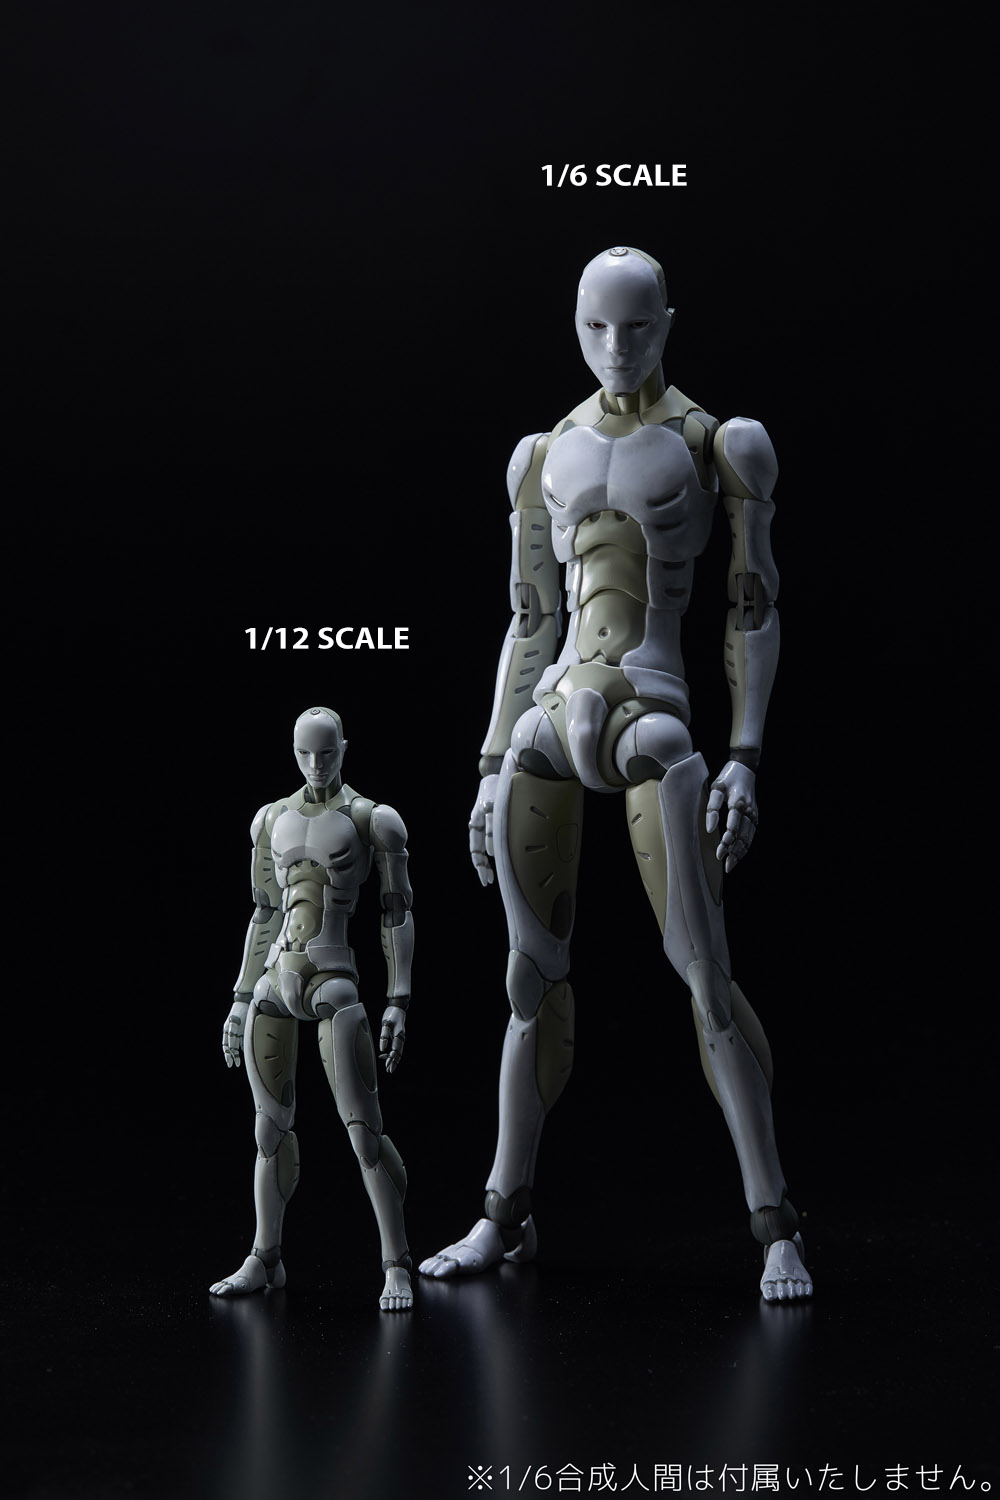 TOA HEAVY INDUSTRIES SYNTHETIC HUMAN 1/6 SCALE AF